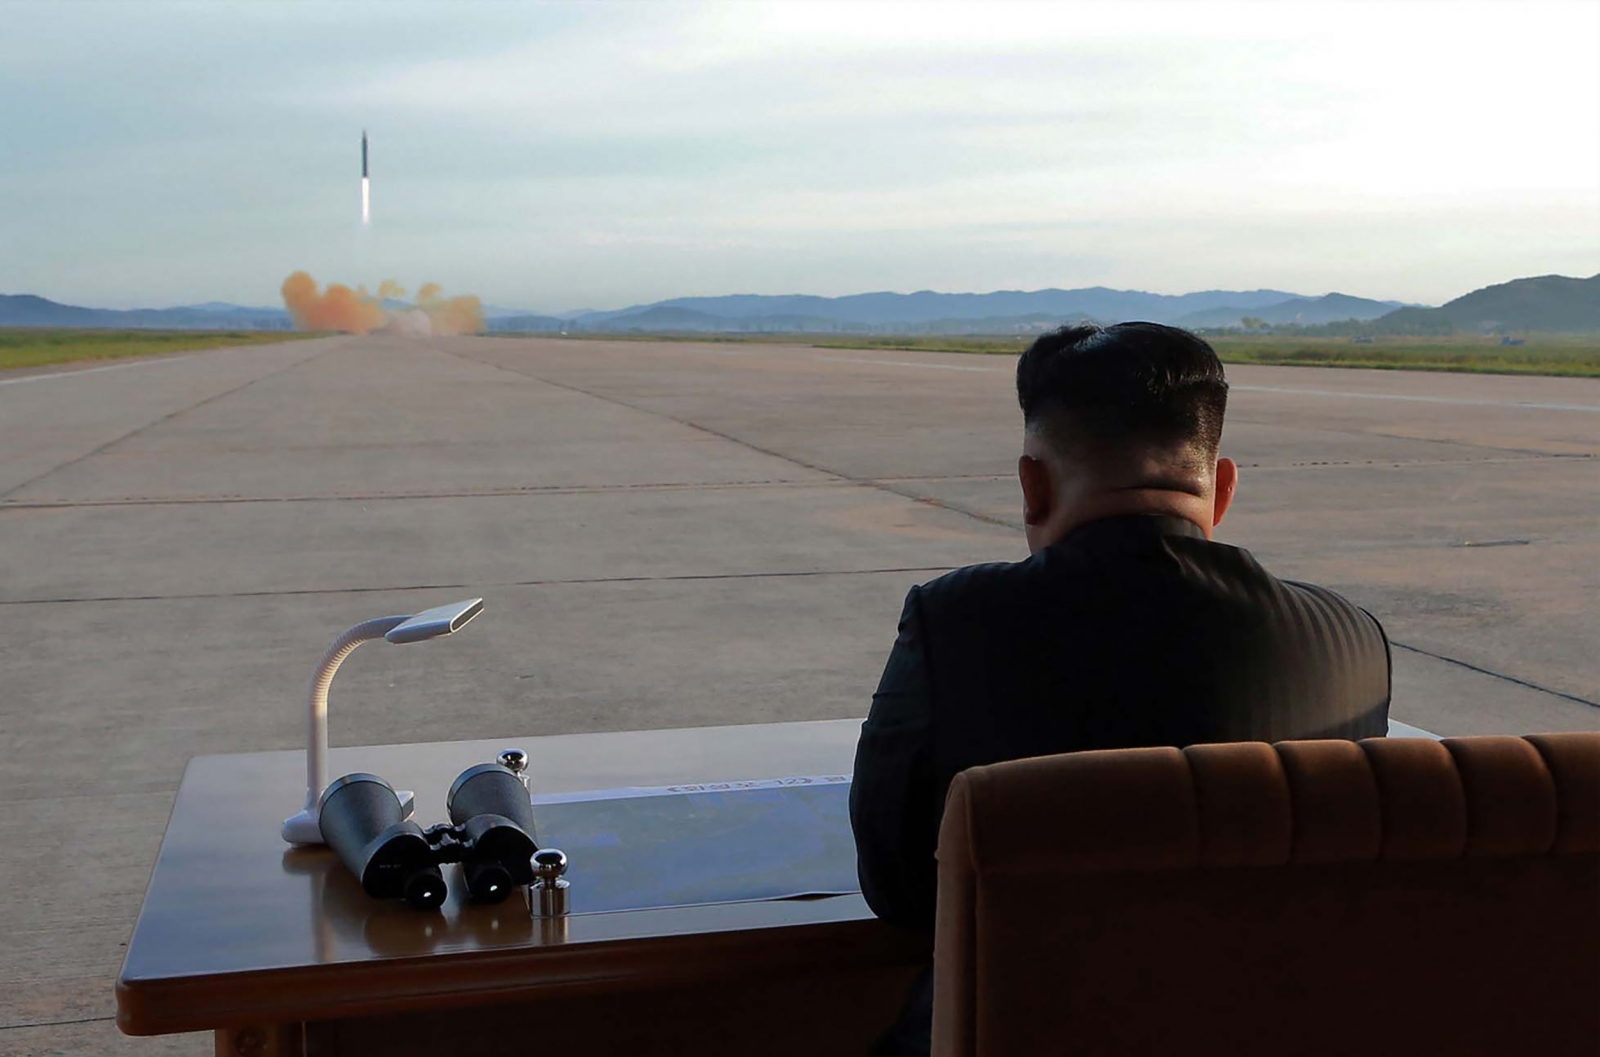 north-korean-missiles-spotted-being-moved-from-rocket-facility-reports-south-korean-broadcasters